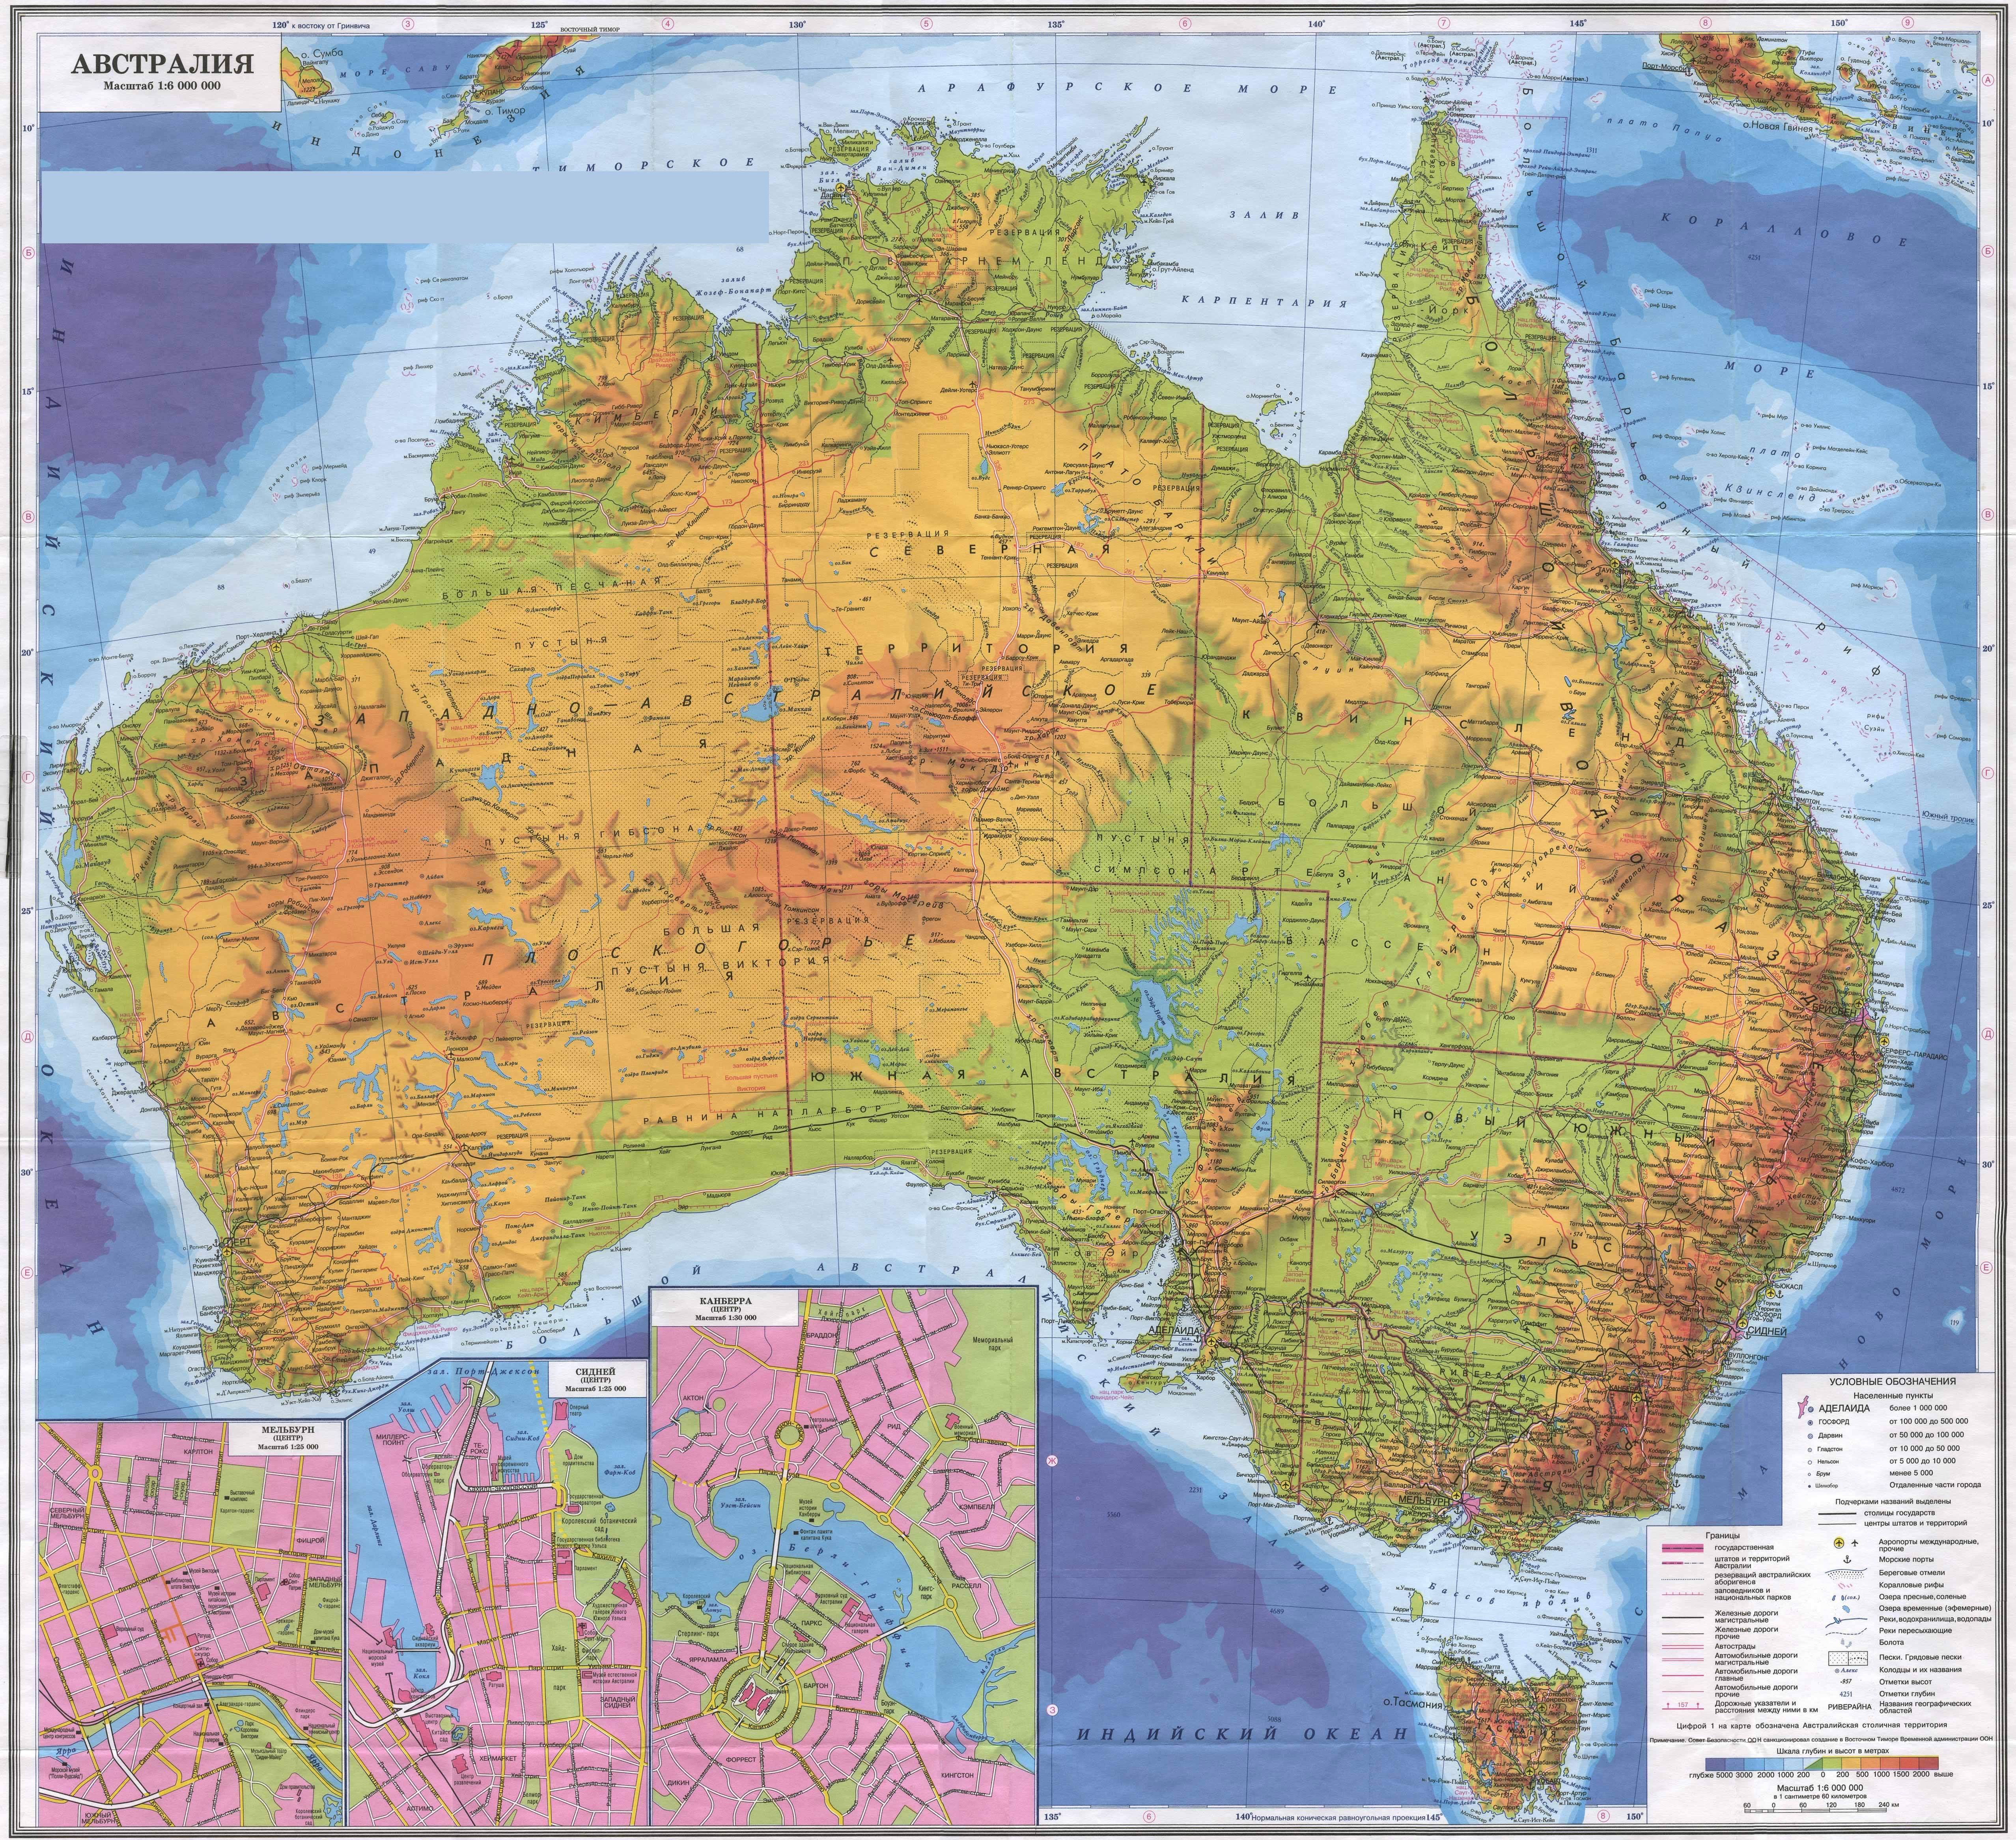 Highly Detailed Russian Topographical Map Of Australia With Towns